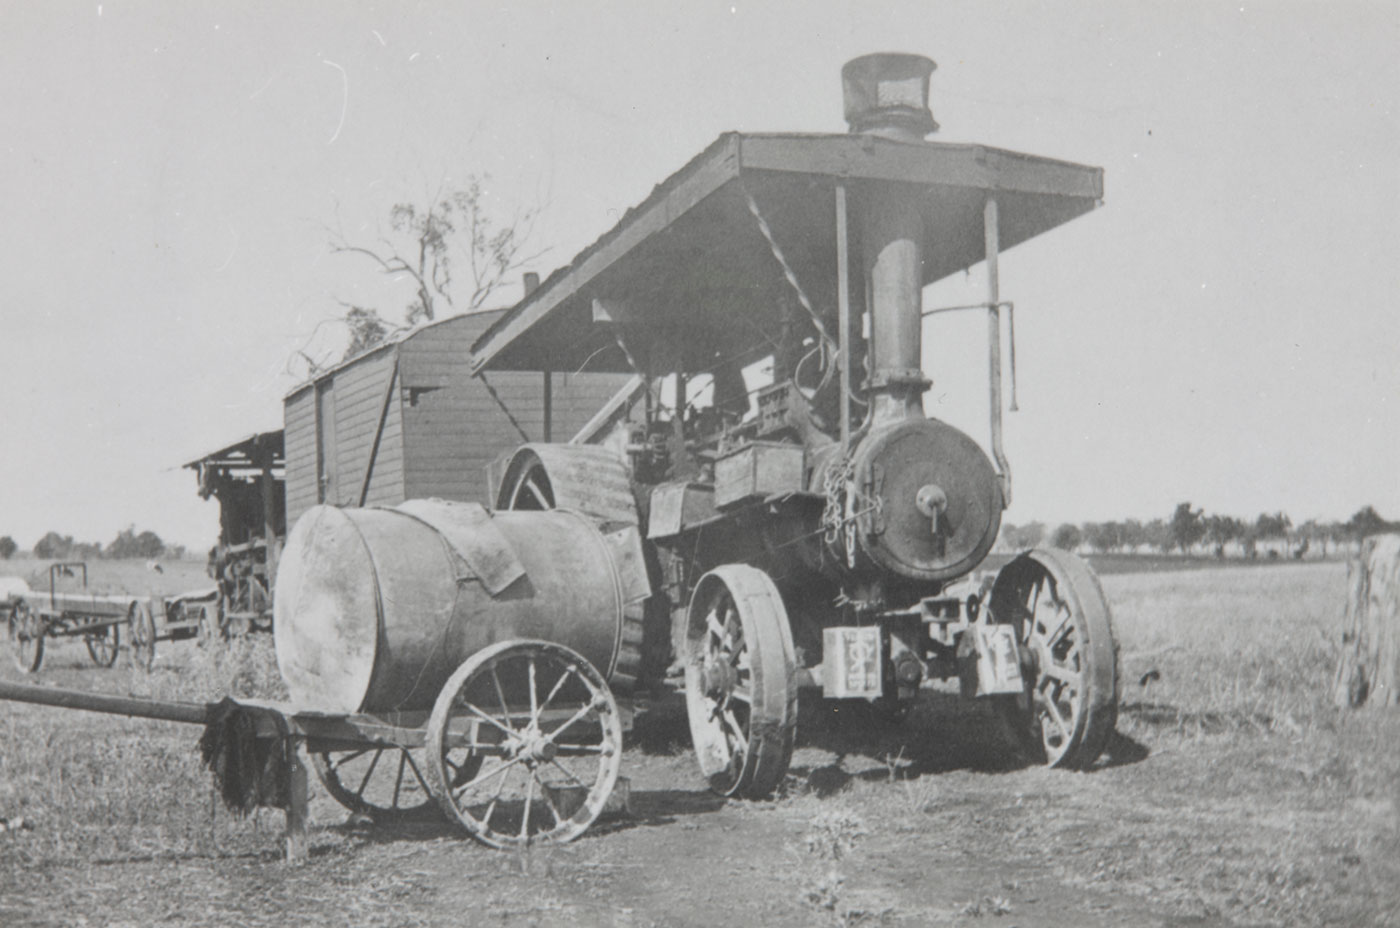 Steam-powered vehicle in a field. - click to view larger image